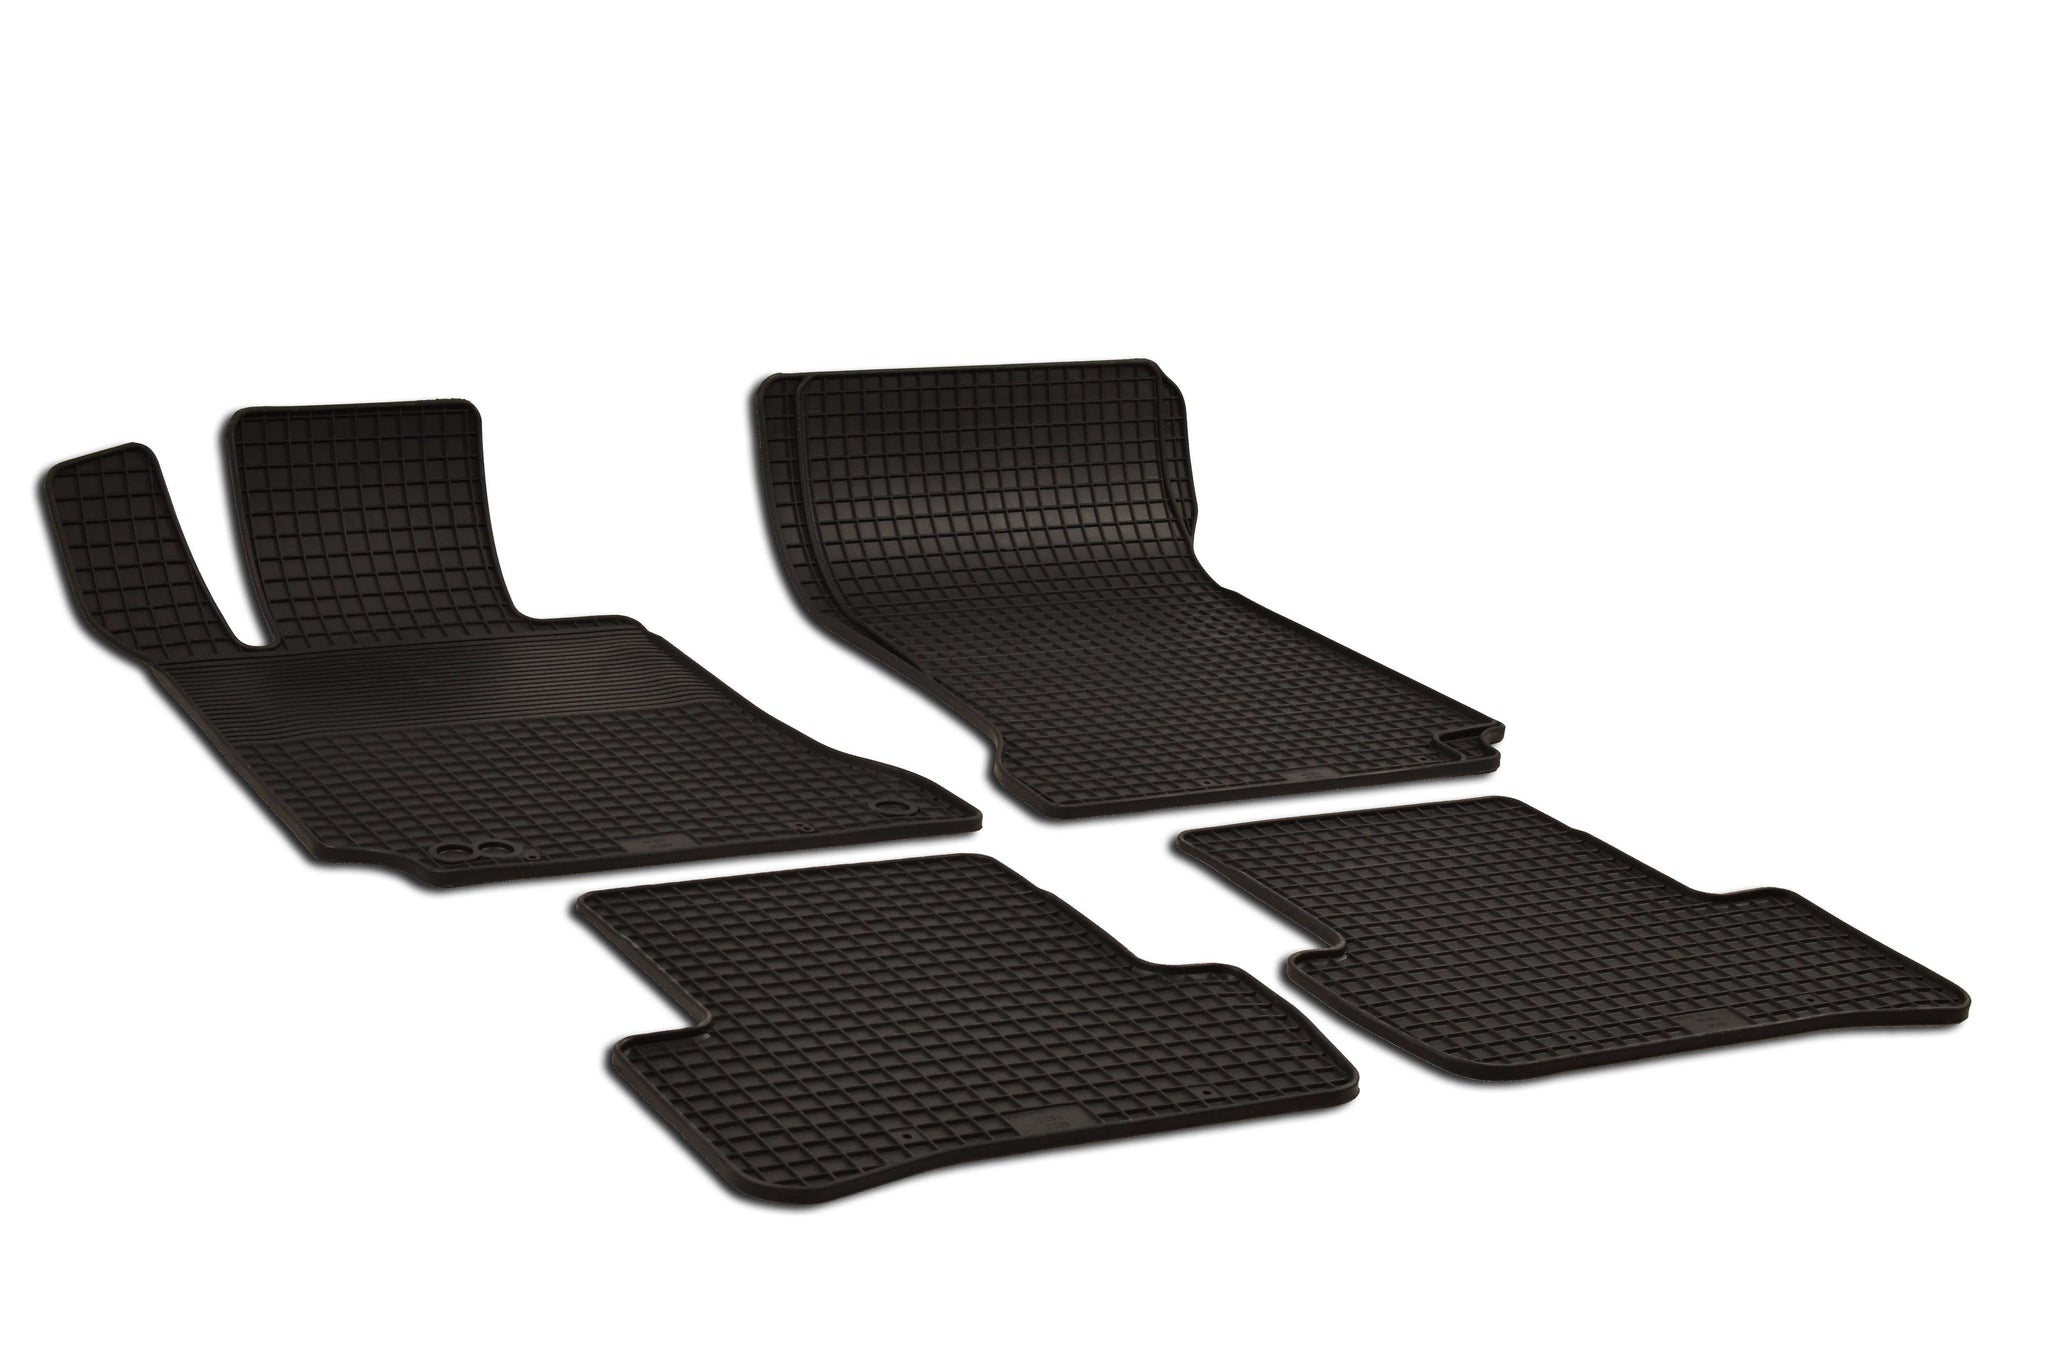 Mercedes C63 AMG S 2019 Sedan Base 205.487 Set of 4 Black Rubber OE Fit All Weather Car Floor Mats